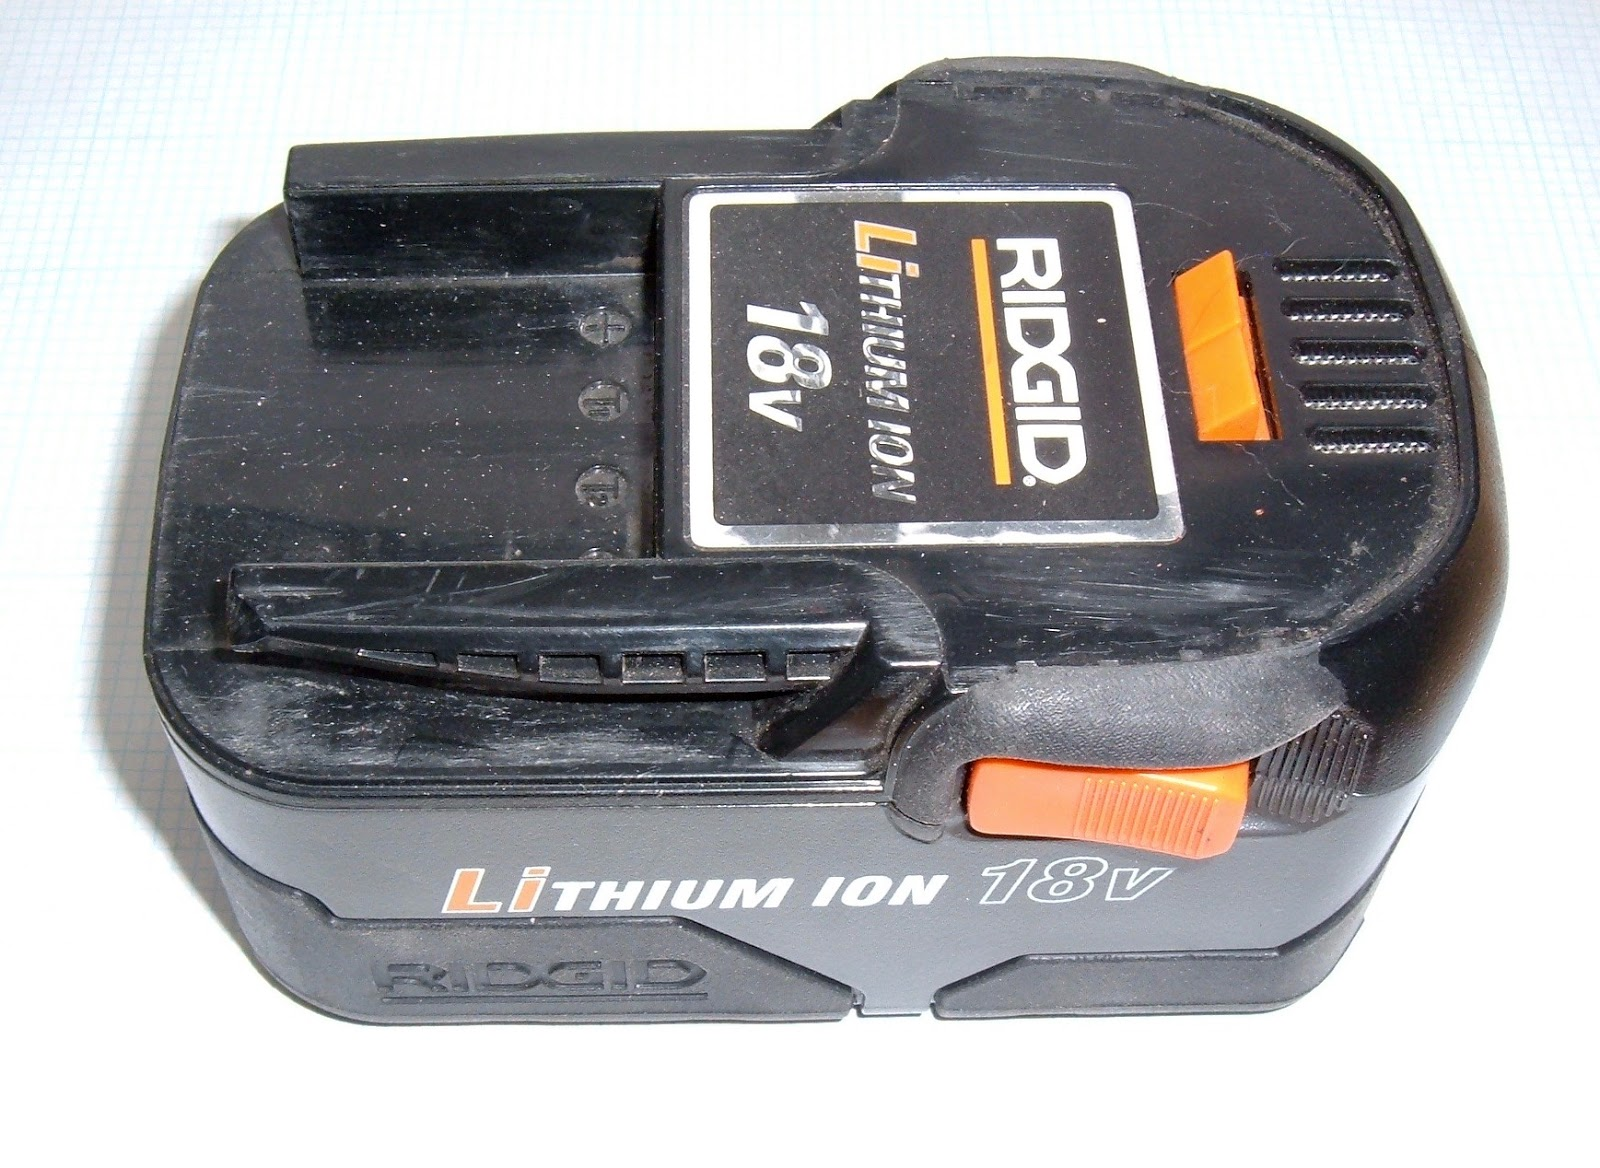 Syonyk S Project Blog Rigid 18v Lithium Ion Tool Battery